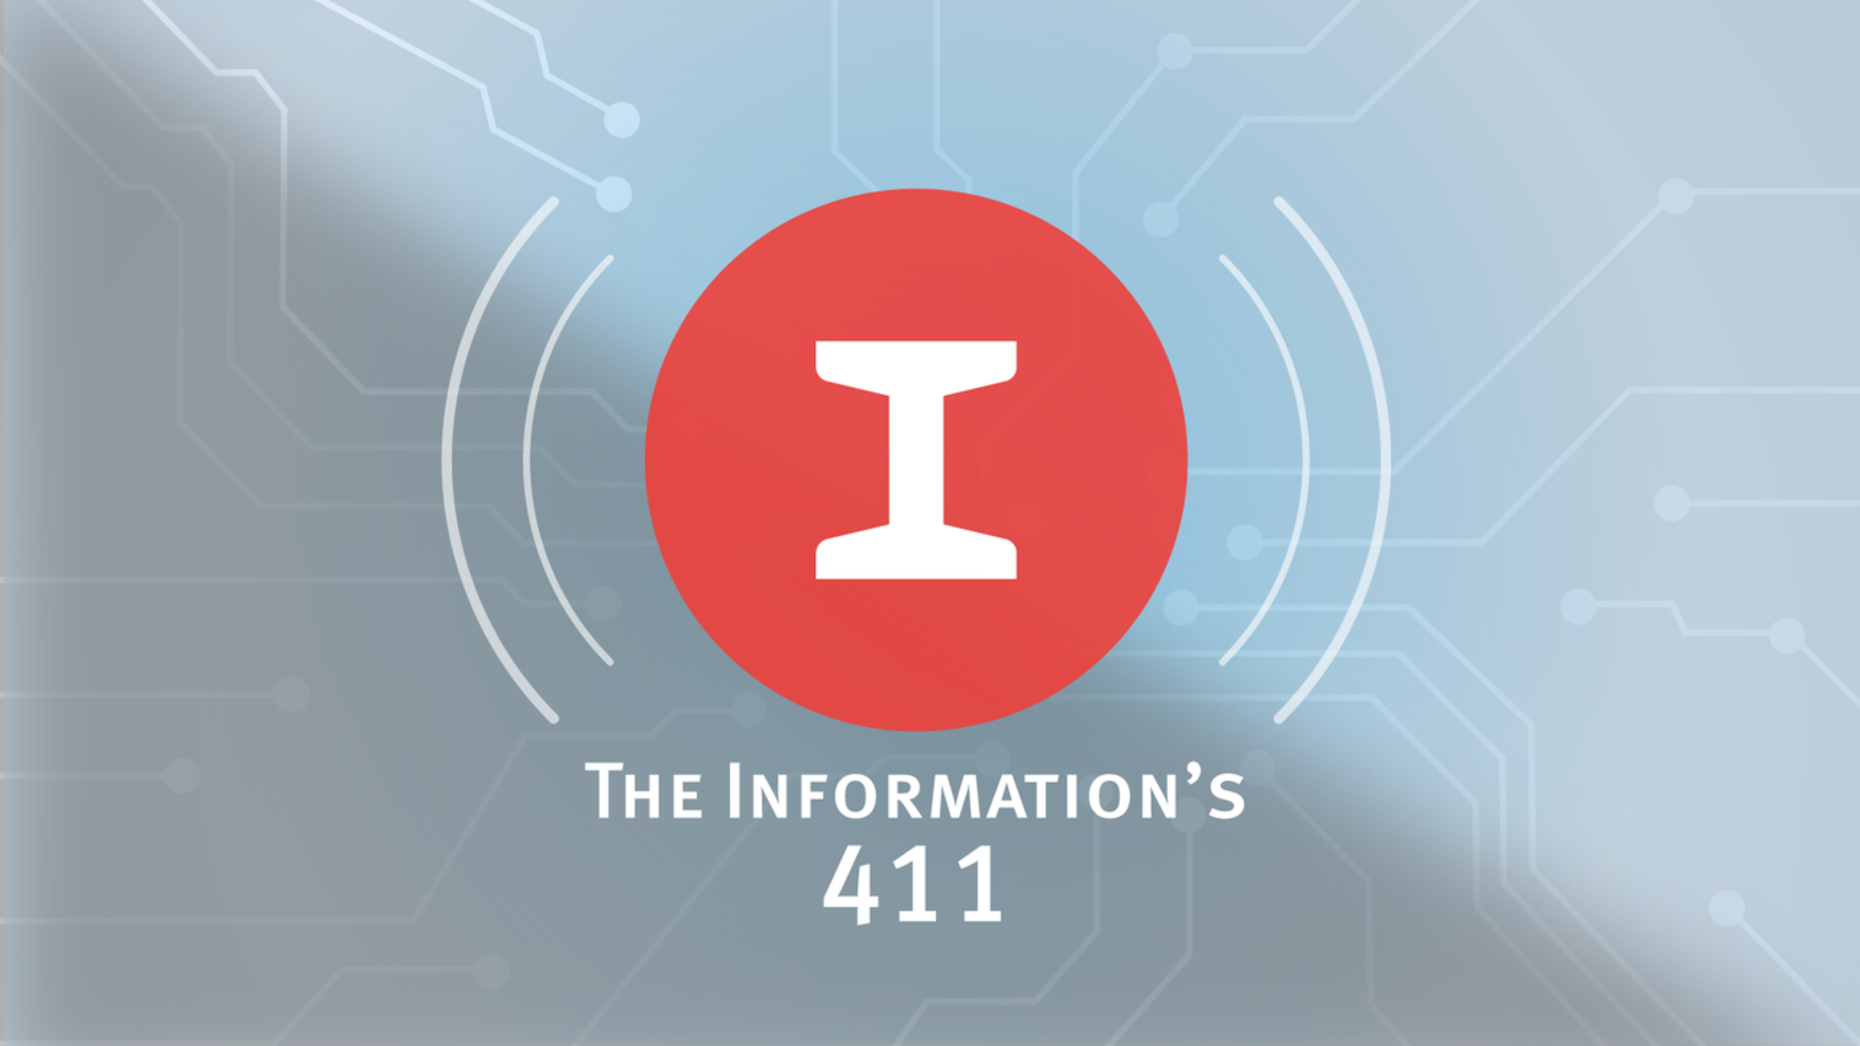 The Information's 411 — We not Working